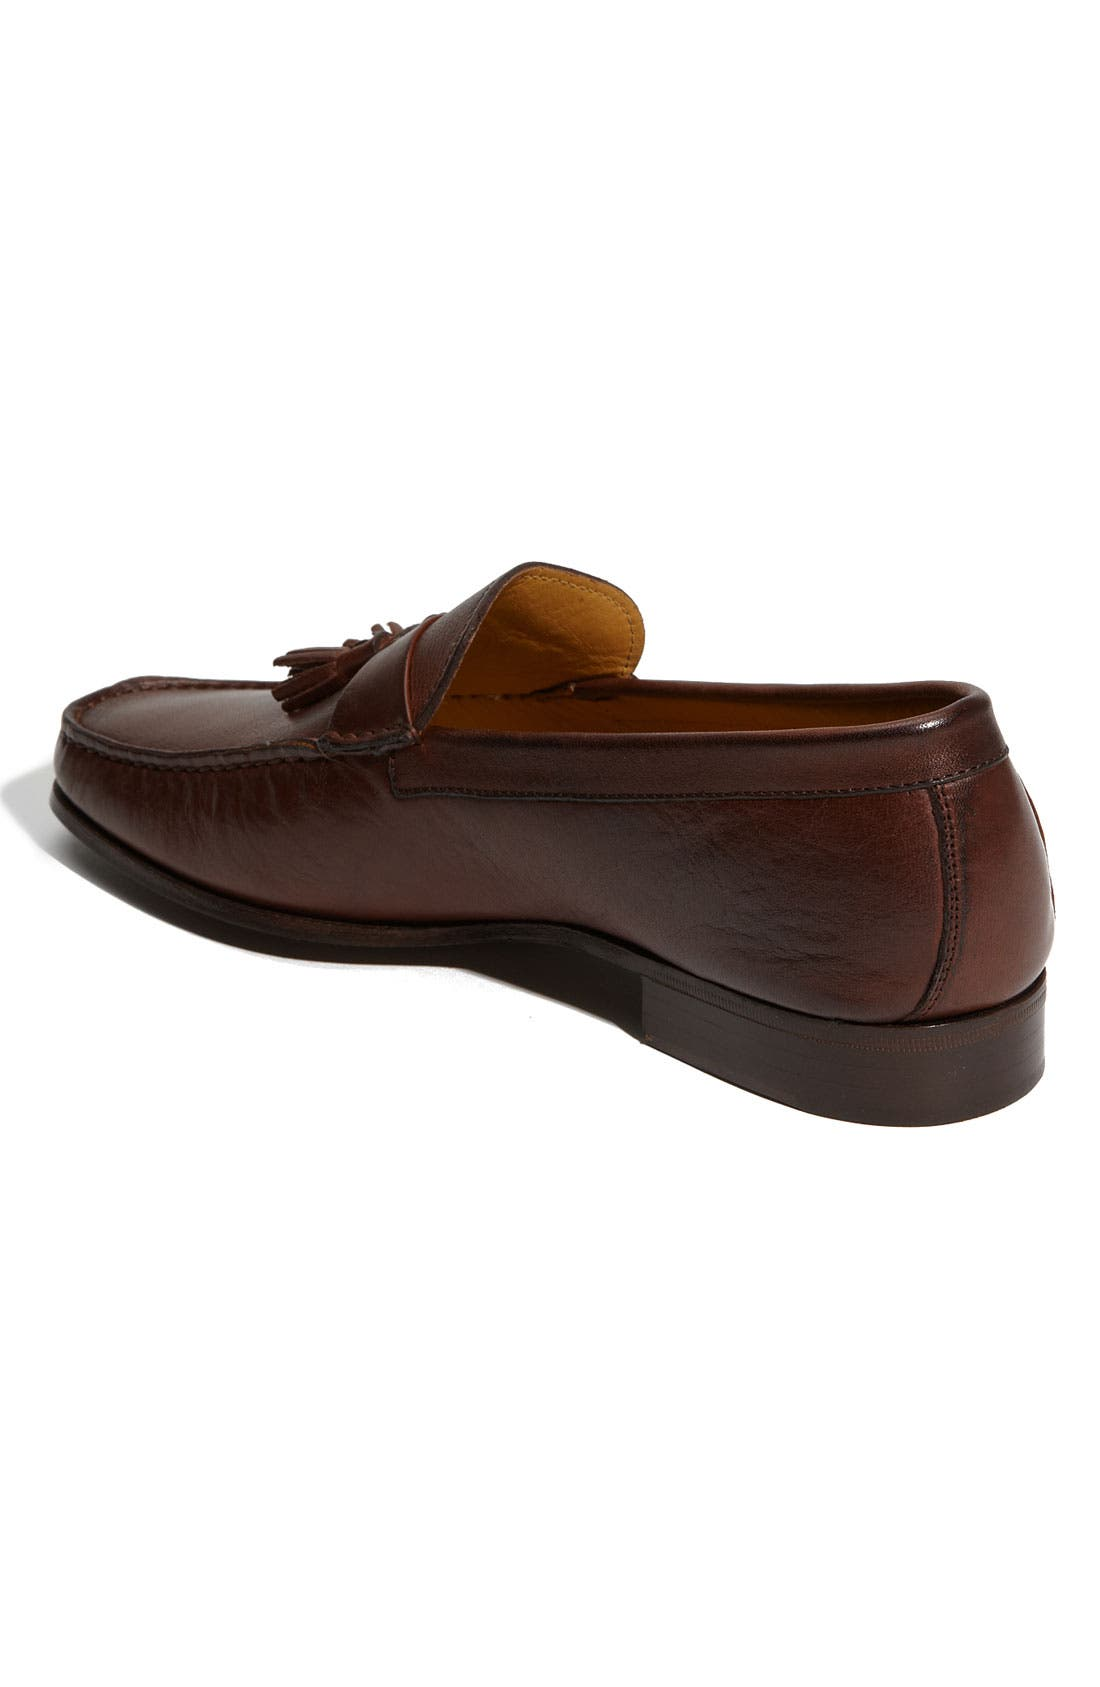 Alternate Image 2  - Nordstrom 'Alex' Loafer